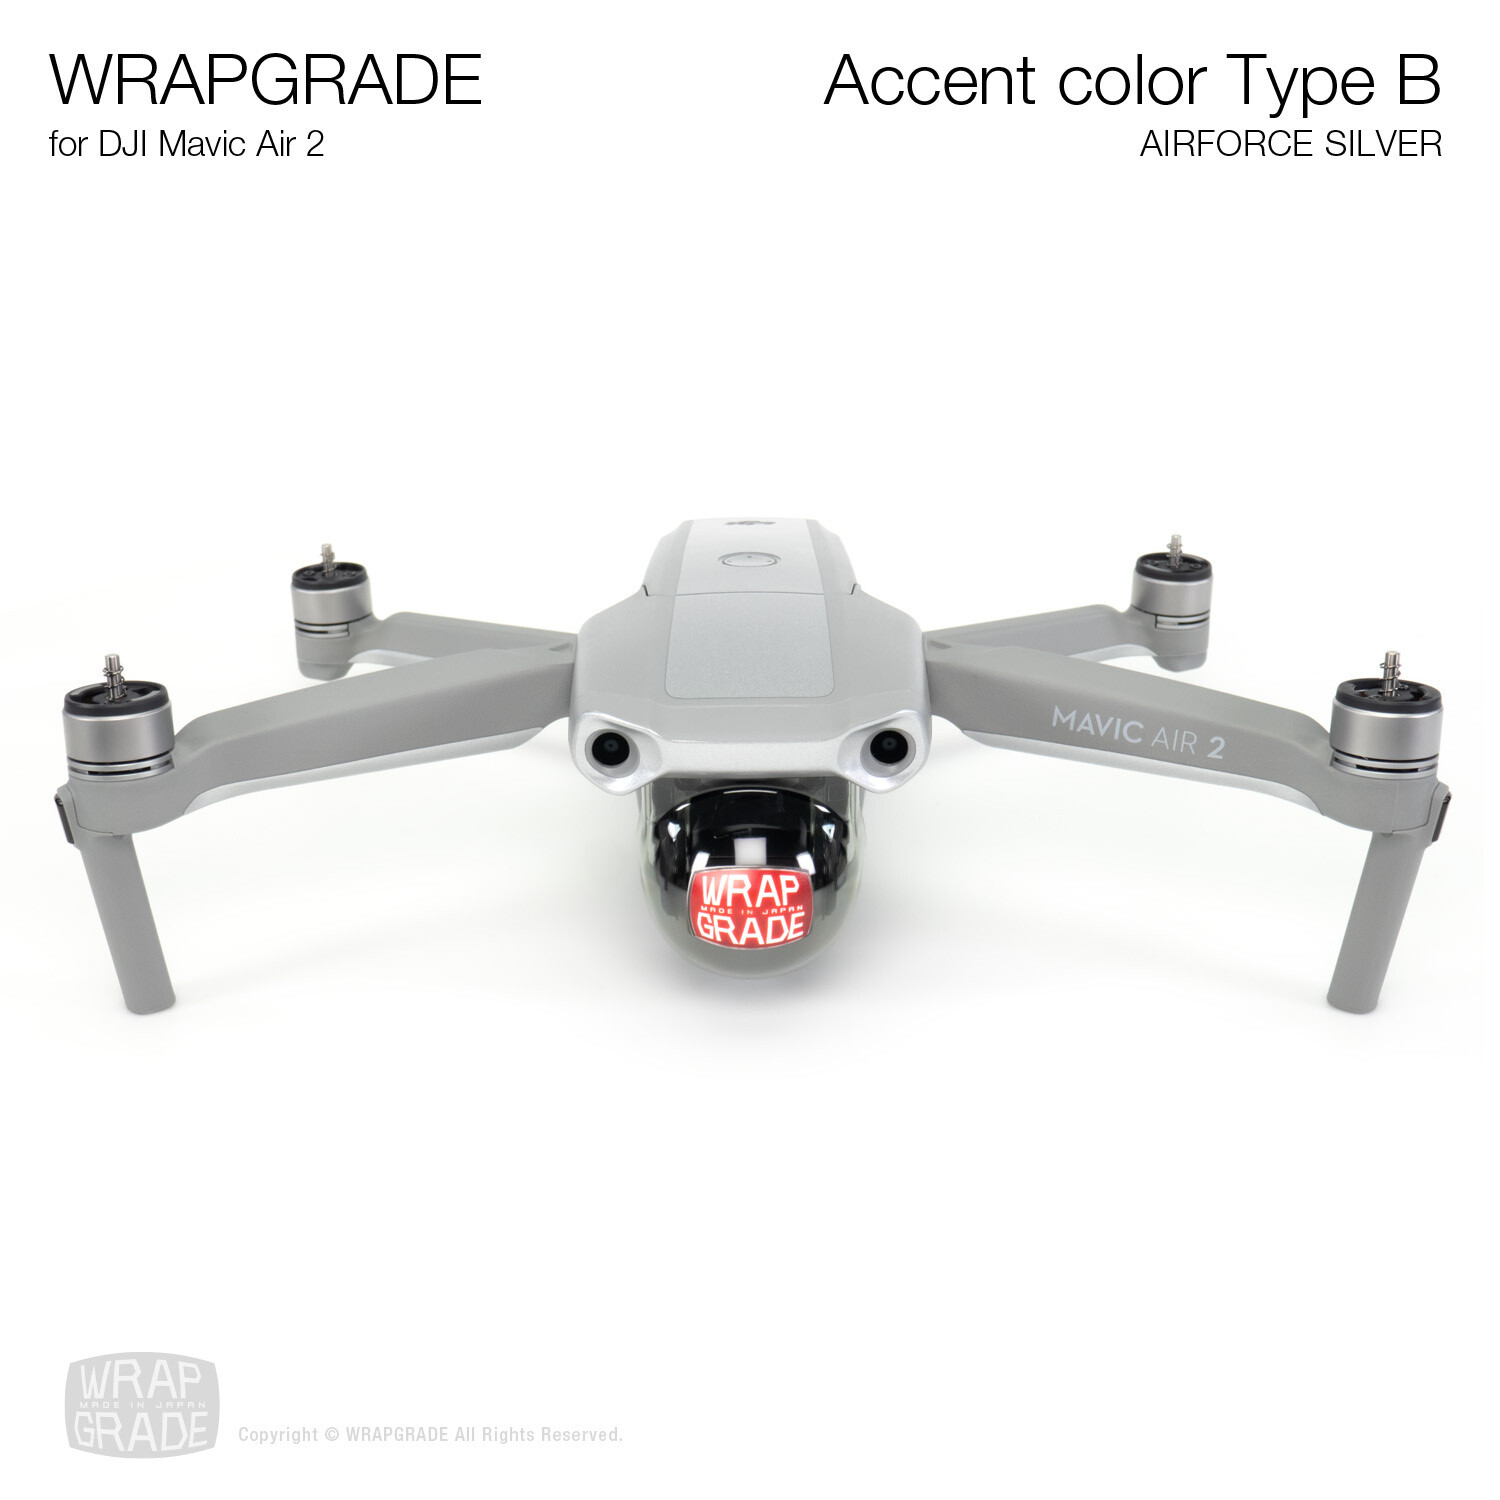 Wrapgrade for DJI Mavic Air 2 | Accent Color B (AIRFORCE SILVER)